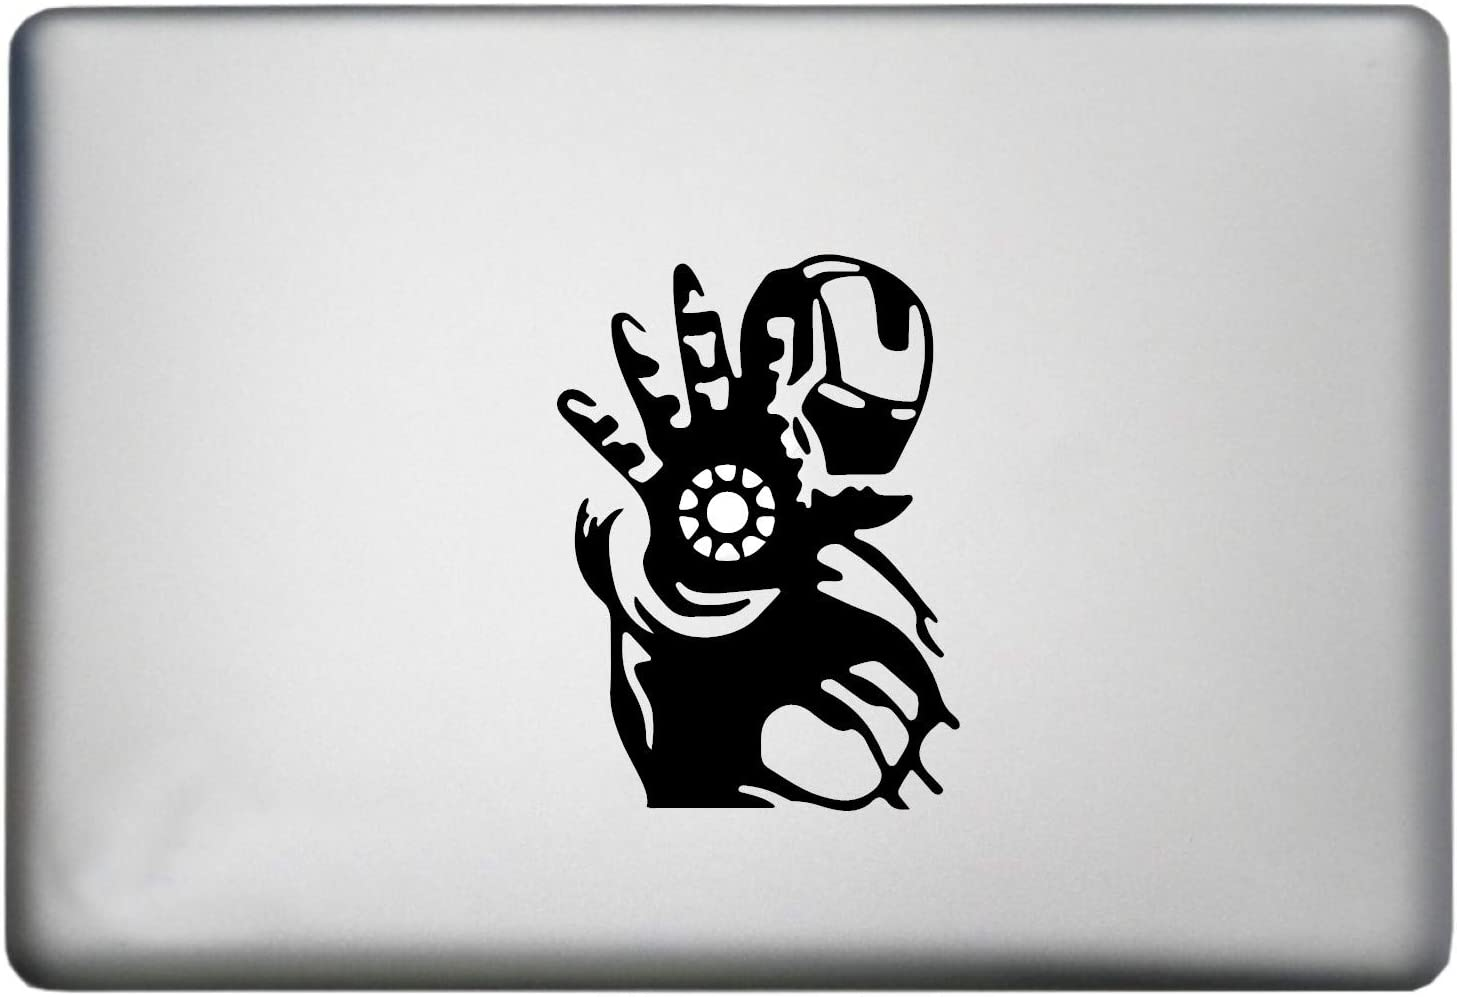 WallDecalsAndArt Iron Man Sticker MacBook Pro Decal is a MacBook Apple Sticker Iron Man. Available in 11, 12, 13 and 15 inch Laptop Sizes. Looks Great with Your Iron Man Theme. Many Colors-Black